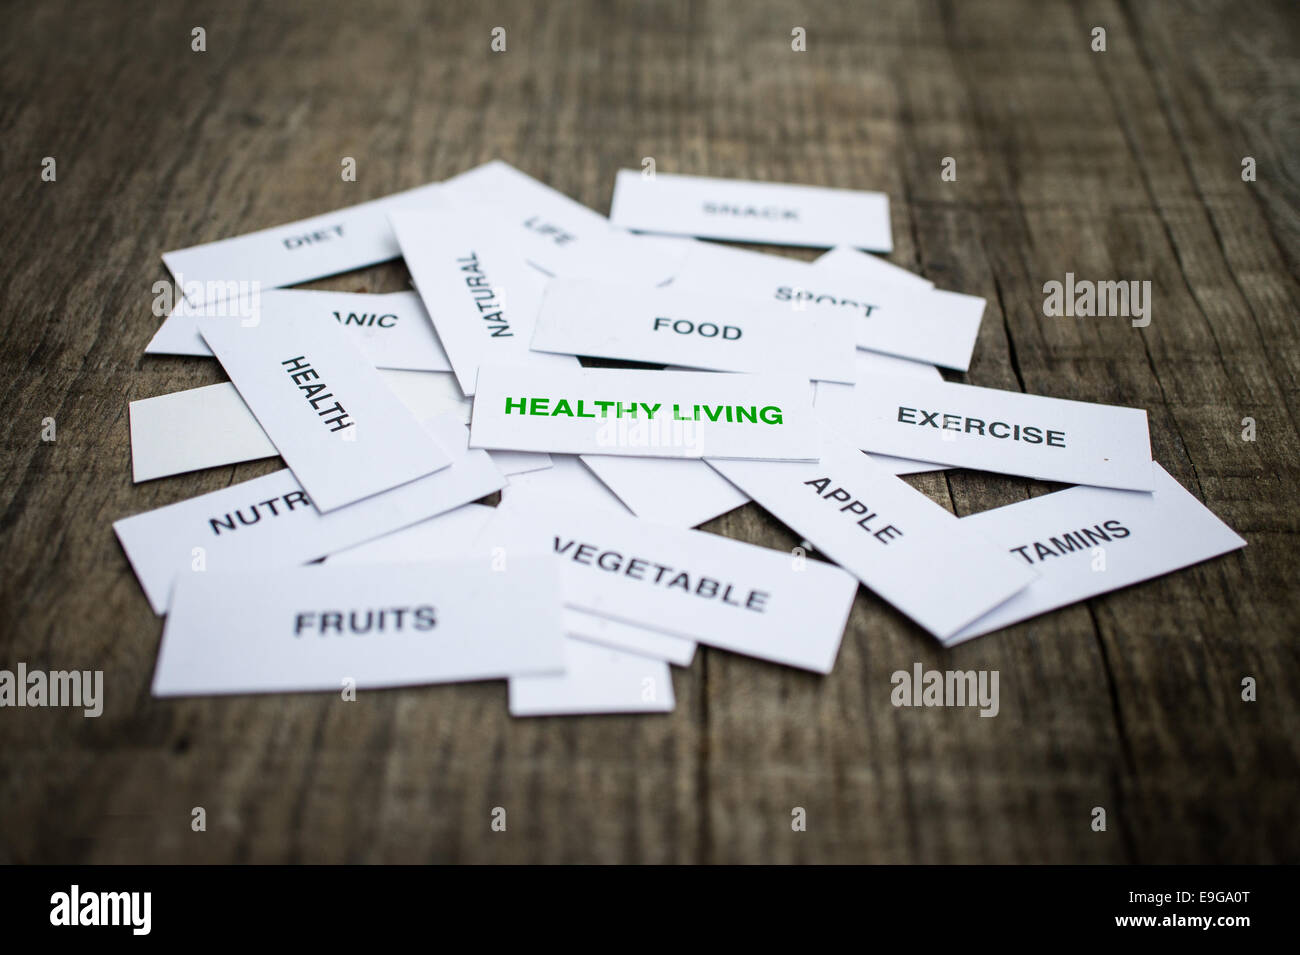 Healthy Living Concept - Stock Image